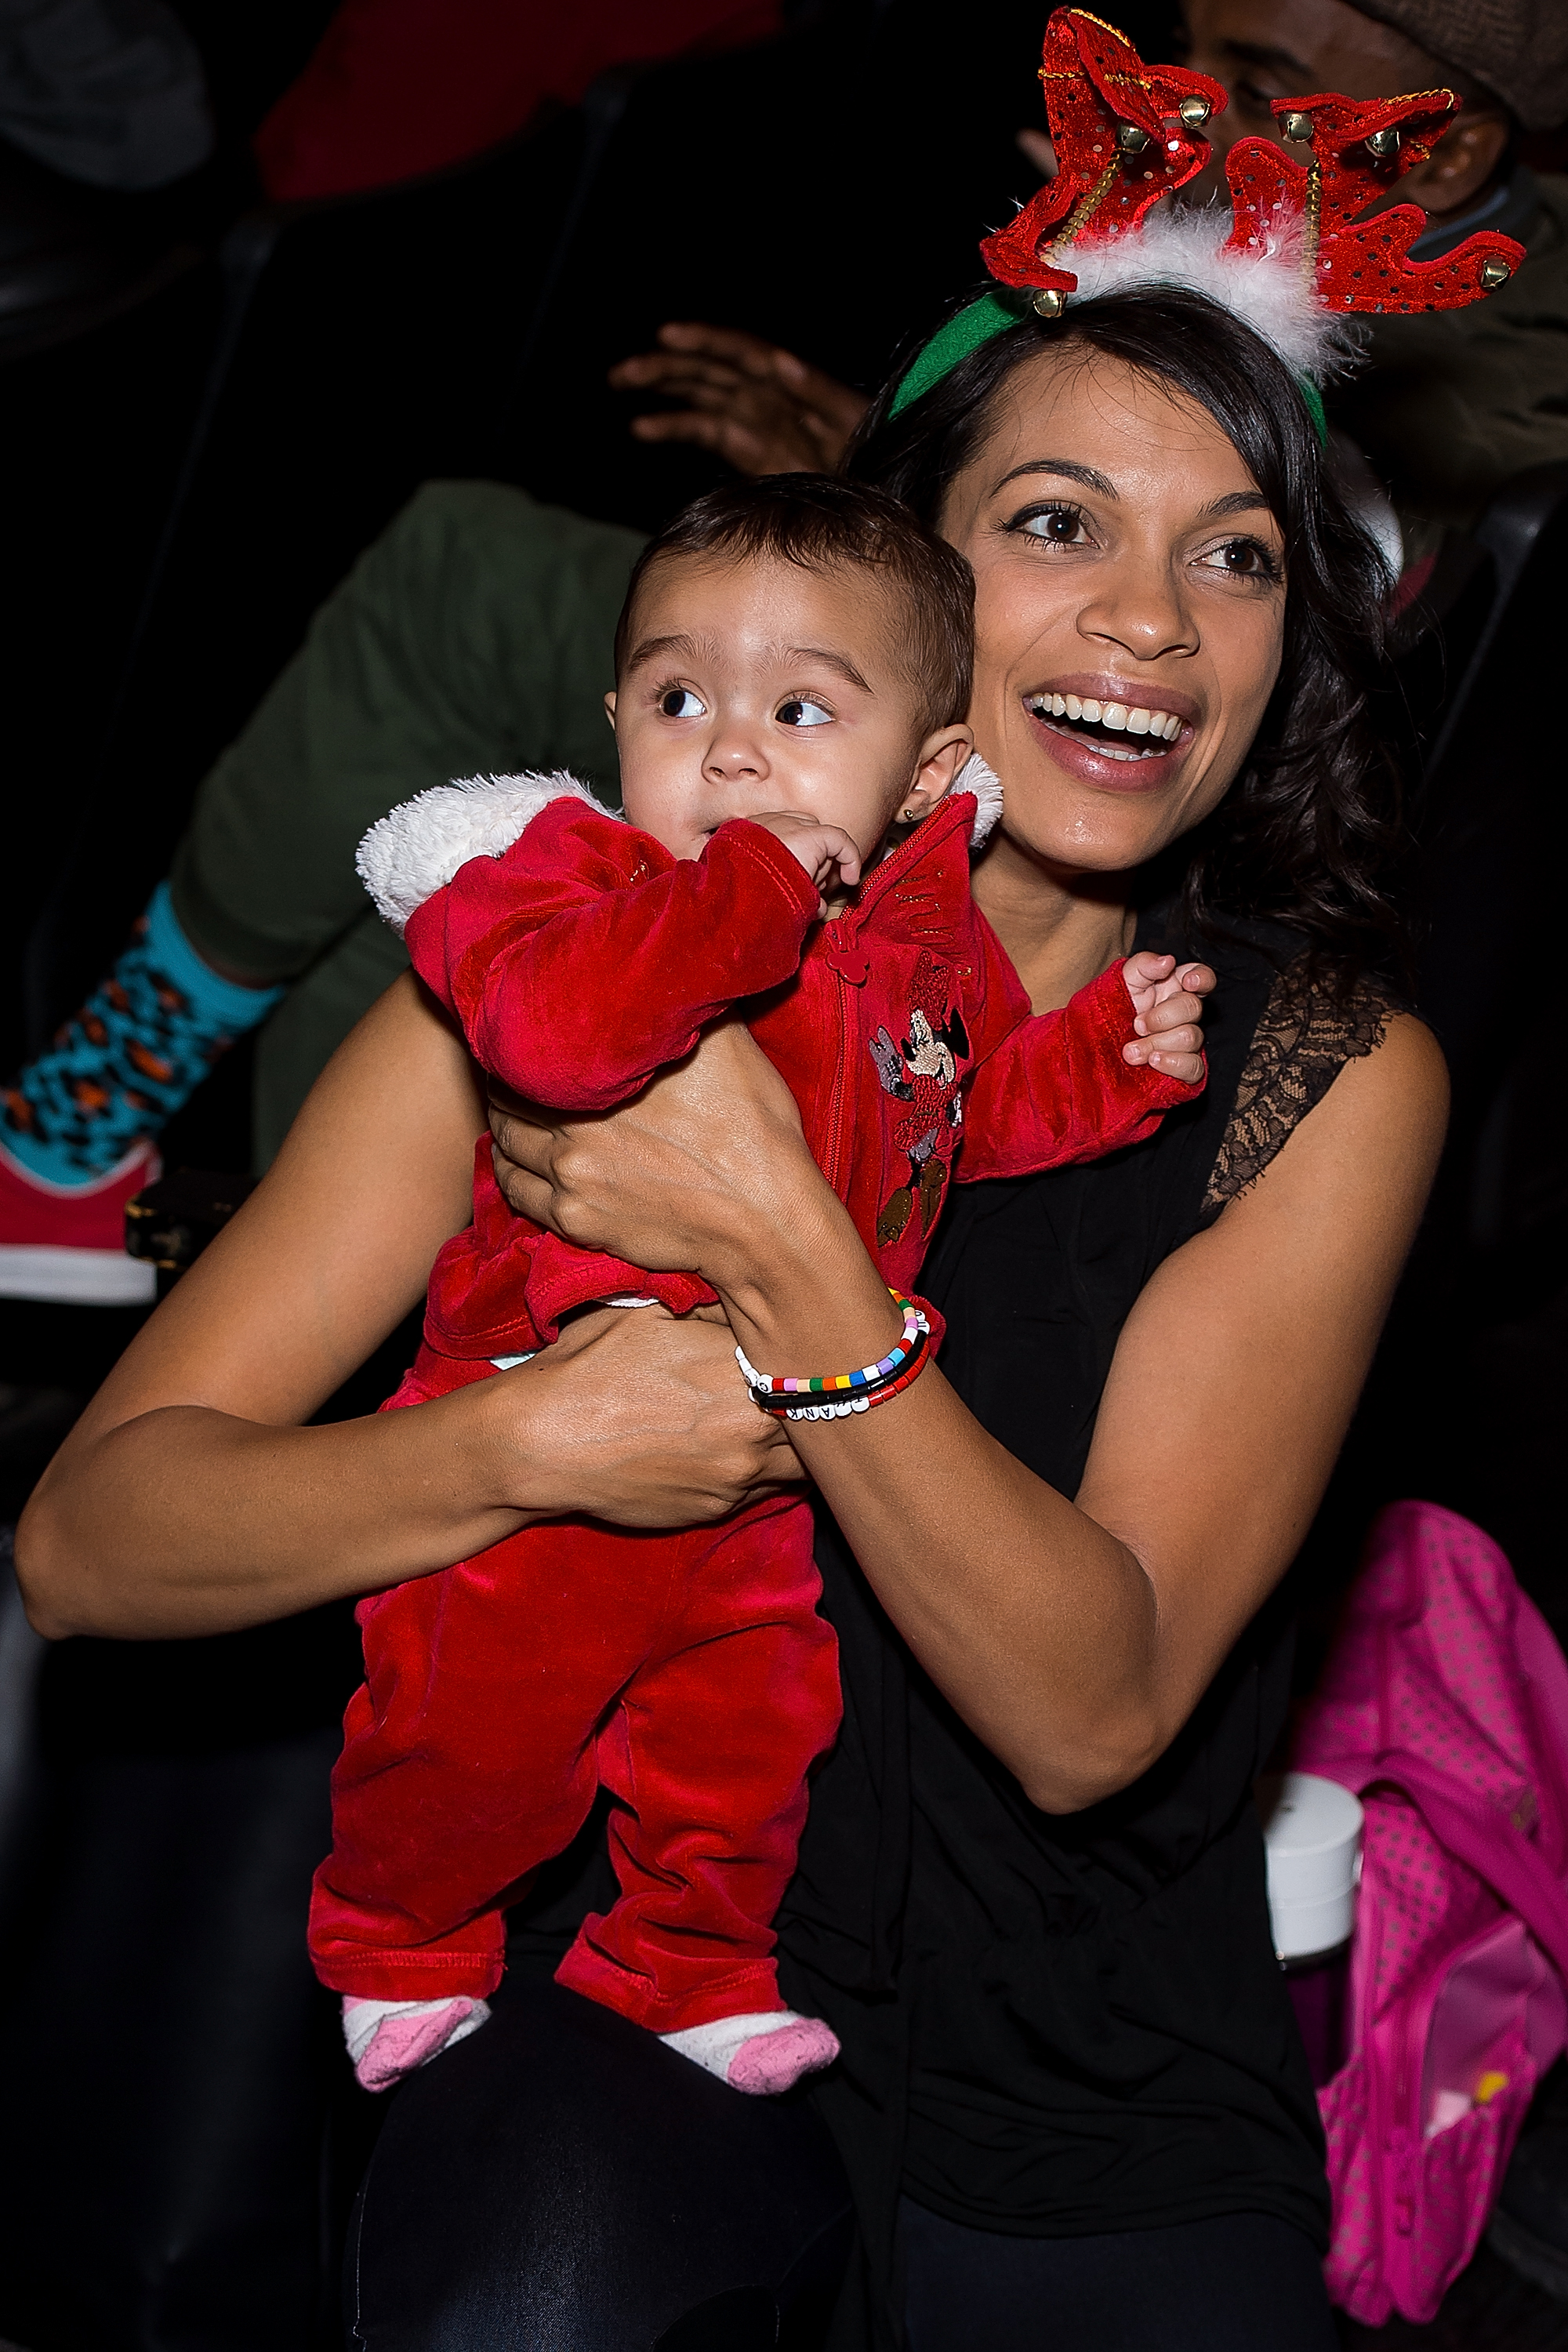 Taken moments before she joined Childhood USA's #EyesWideOpen on stage,Actress Rosario Dawson met one of her newest fans during the West Harlem Community Holiday Celebration and Toy Giveaway.